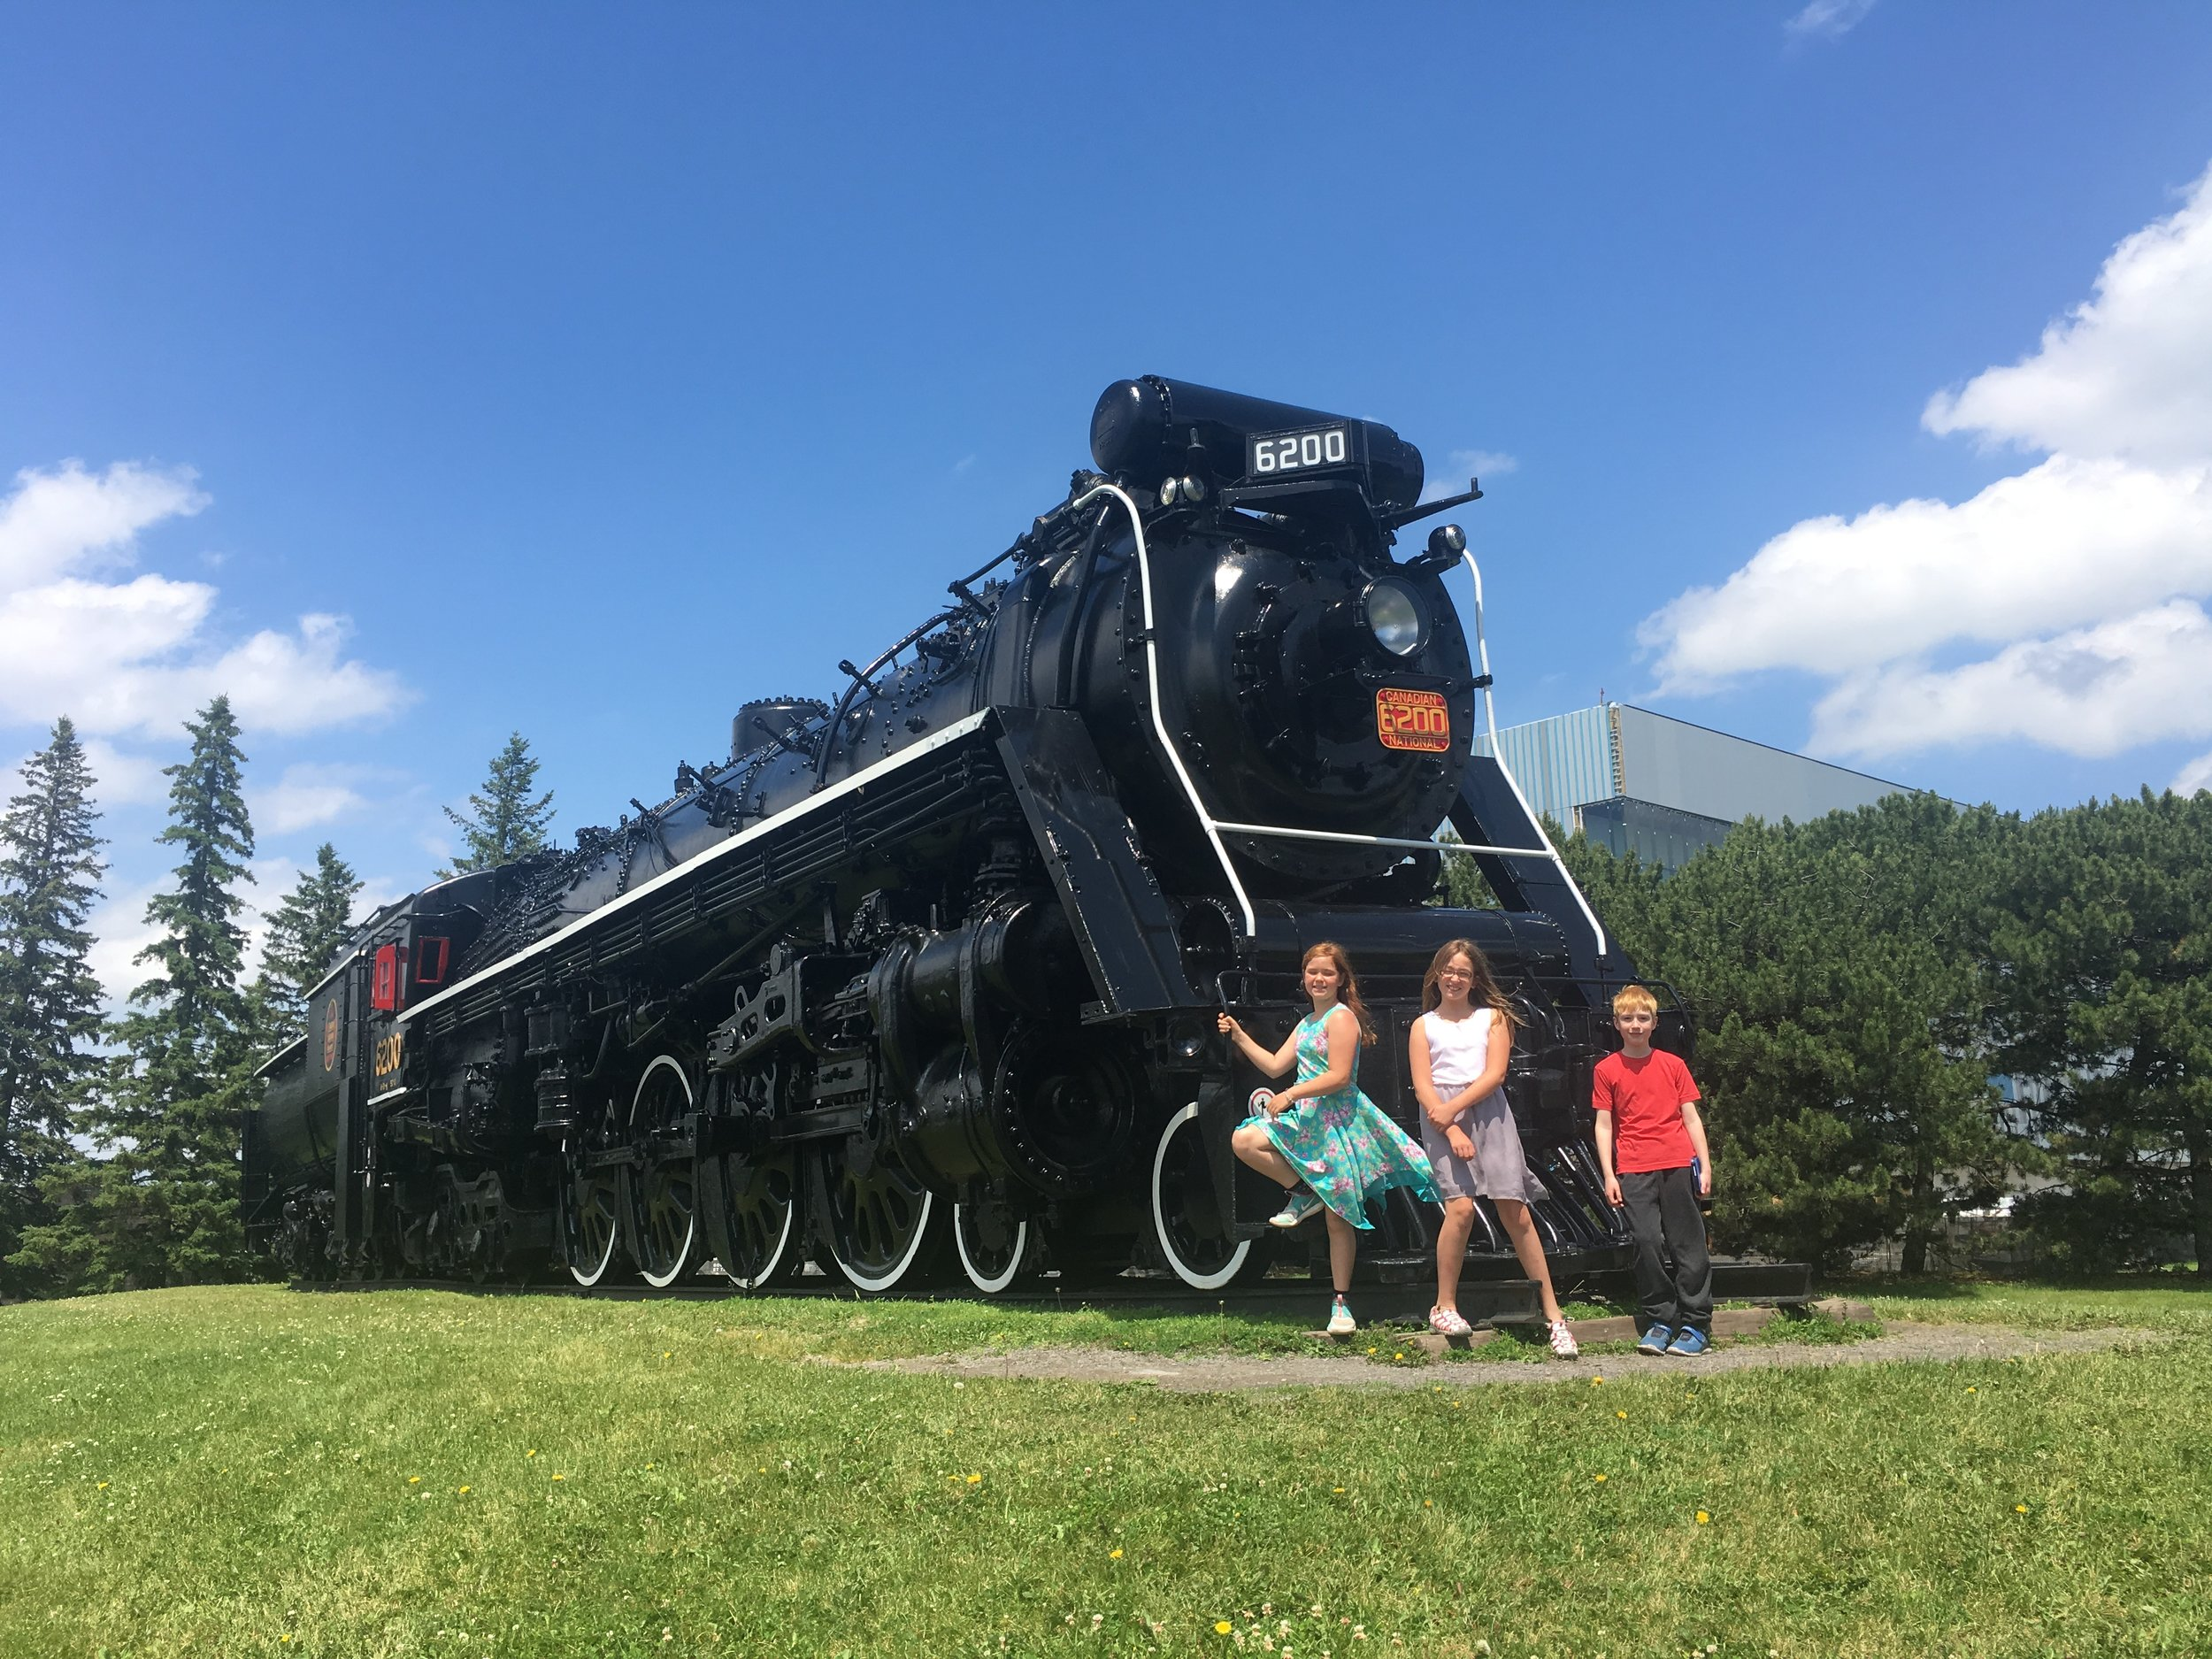 Visit the train by the Science and Tech museum on St Laurent